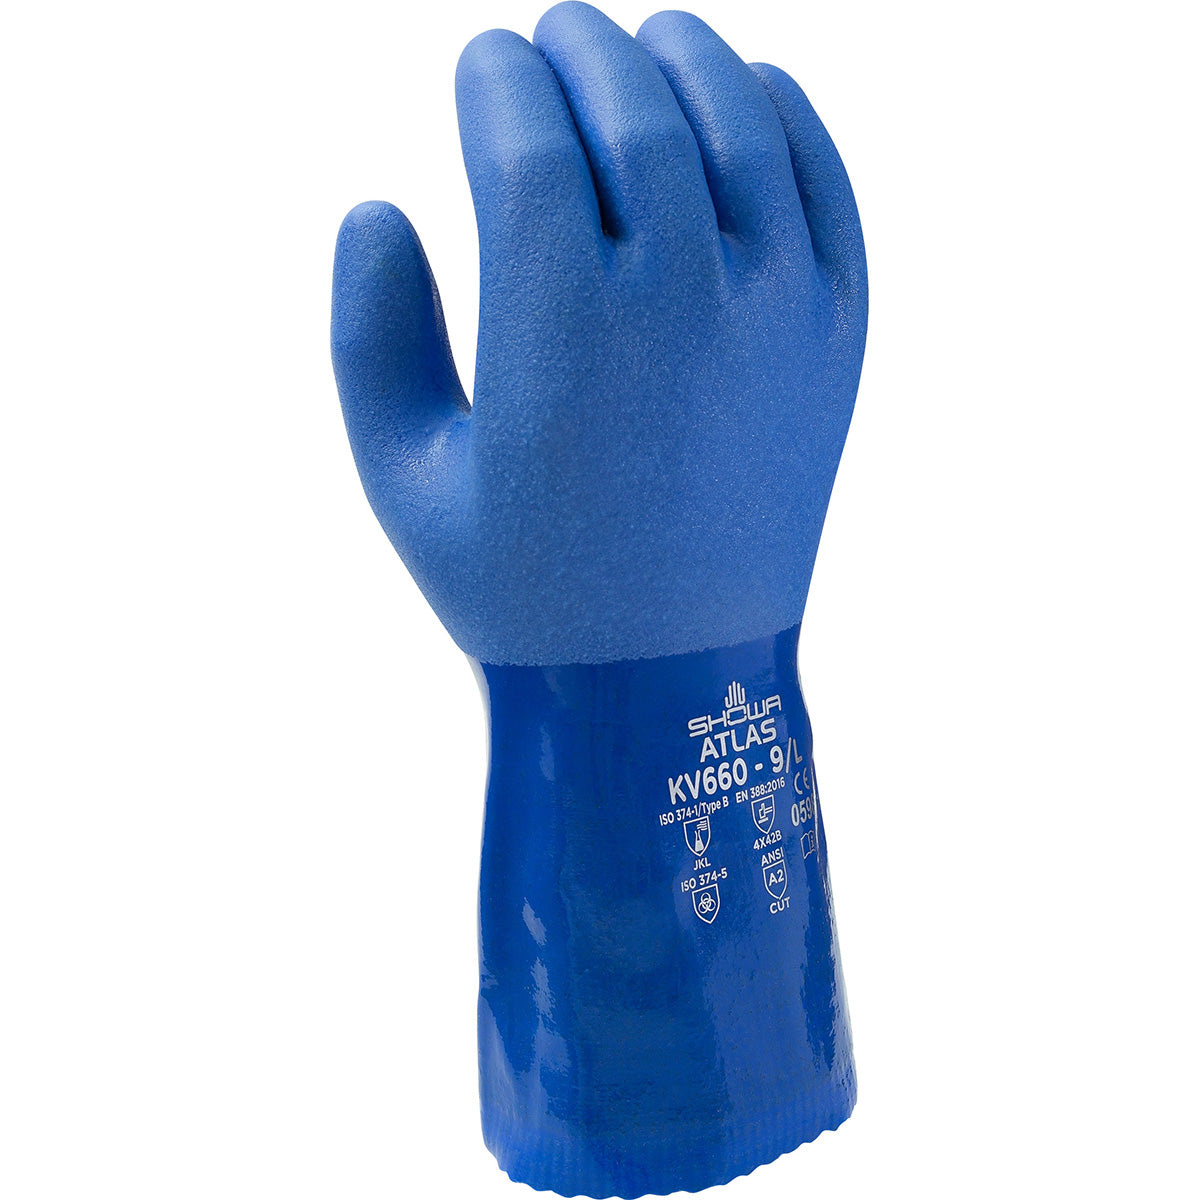 Showa KV660 Super Flexible Triple-Dipped PVC Chemical Resistant Safety Glove with Kevlar Liner (Pack of 12 Pairs) - Cut Level A2 Work Gloves and Hats - Cleanflow